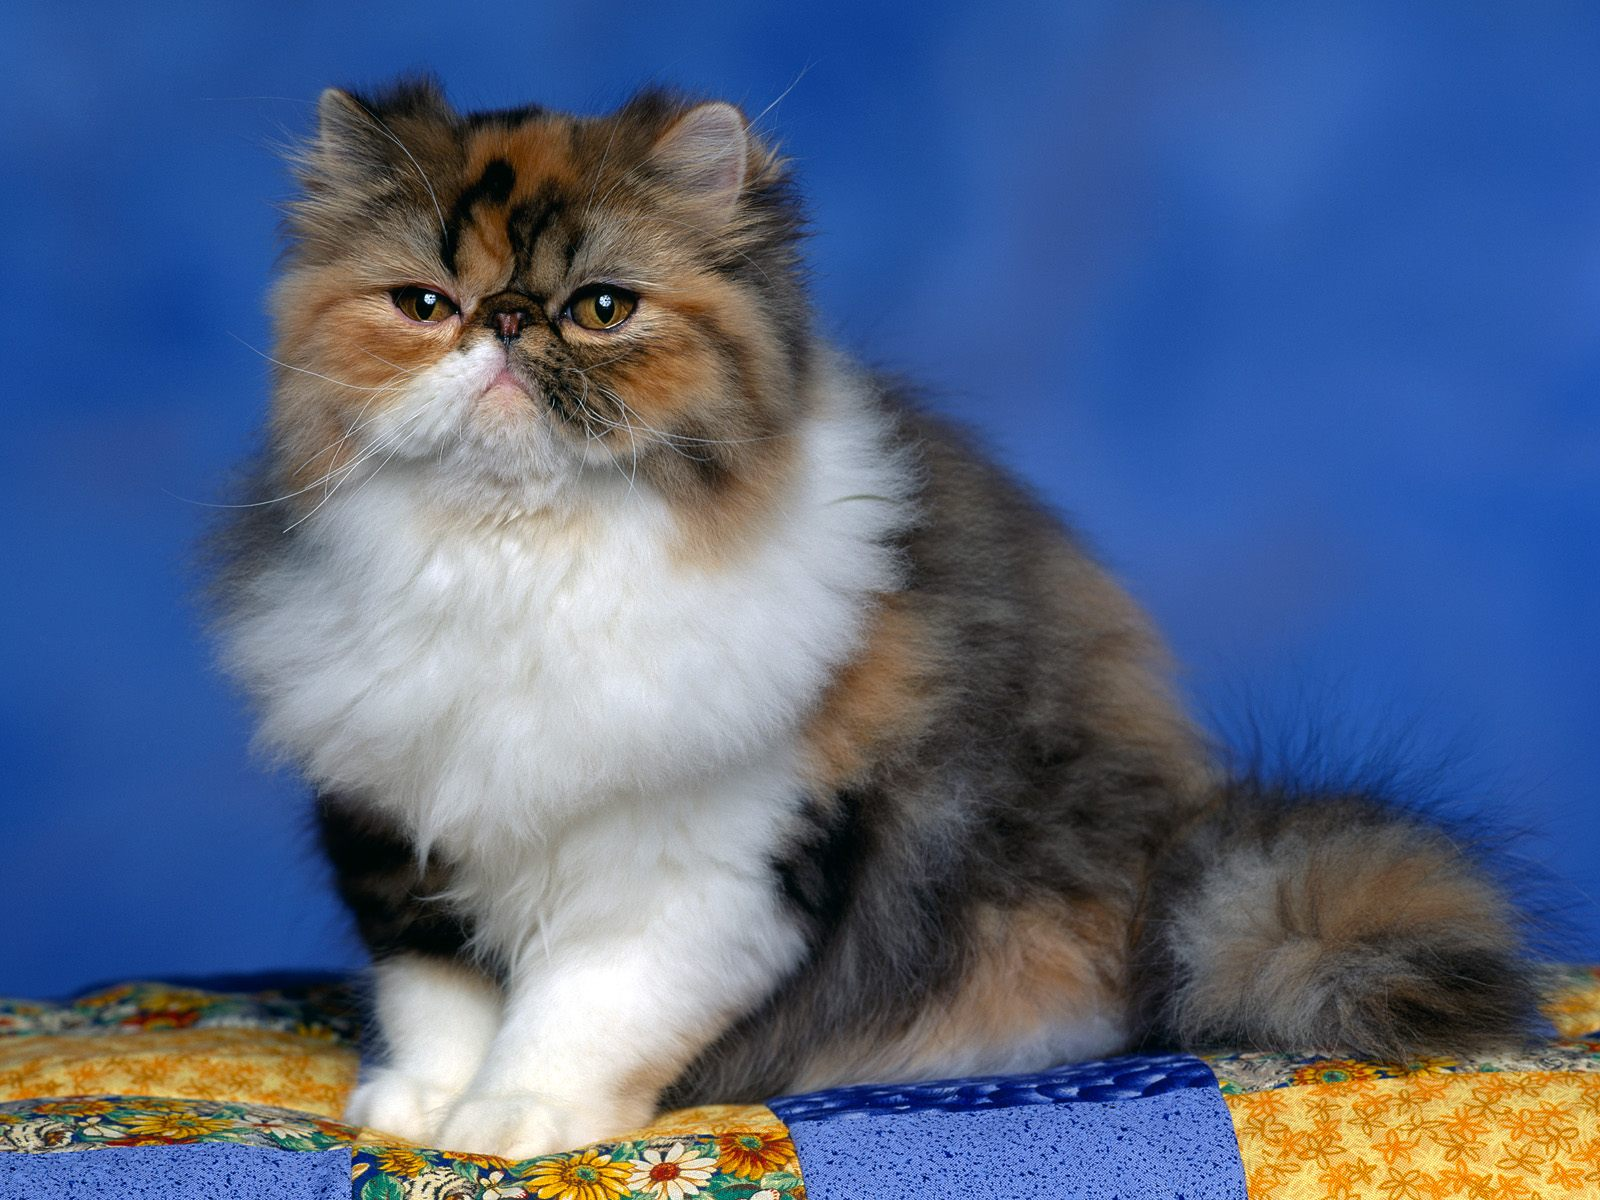 Persian Calico Kitten444888208 - Persian Calico Kitten - Persian, Leopard, Kitten, Calico